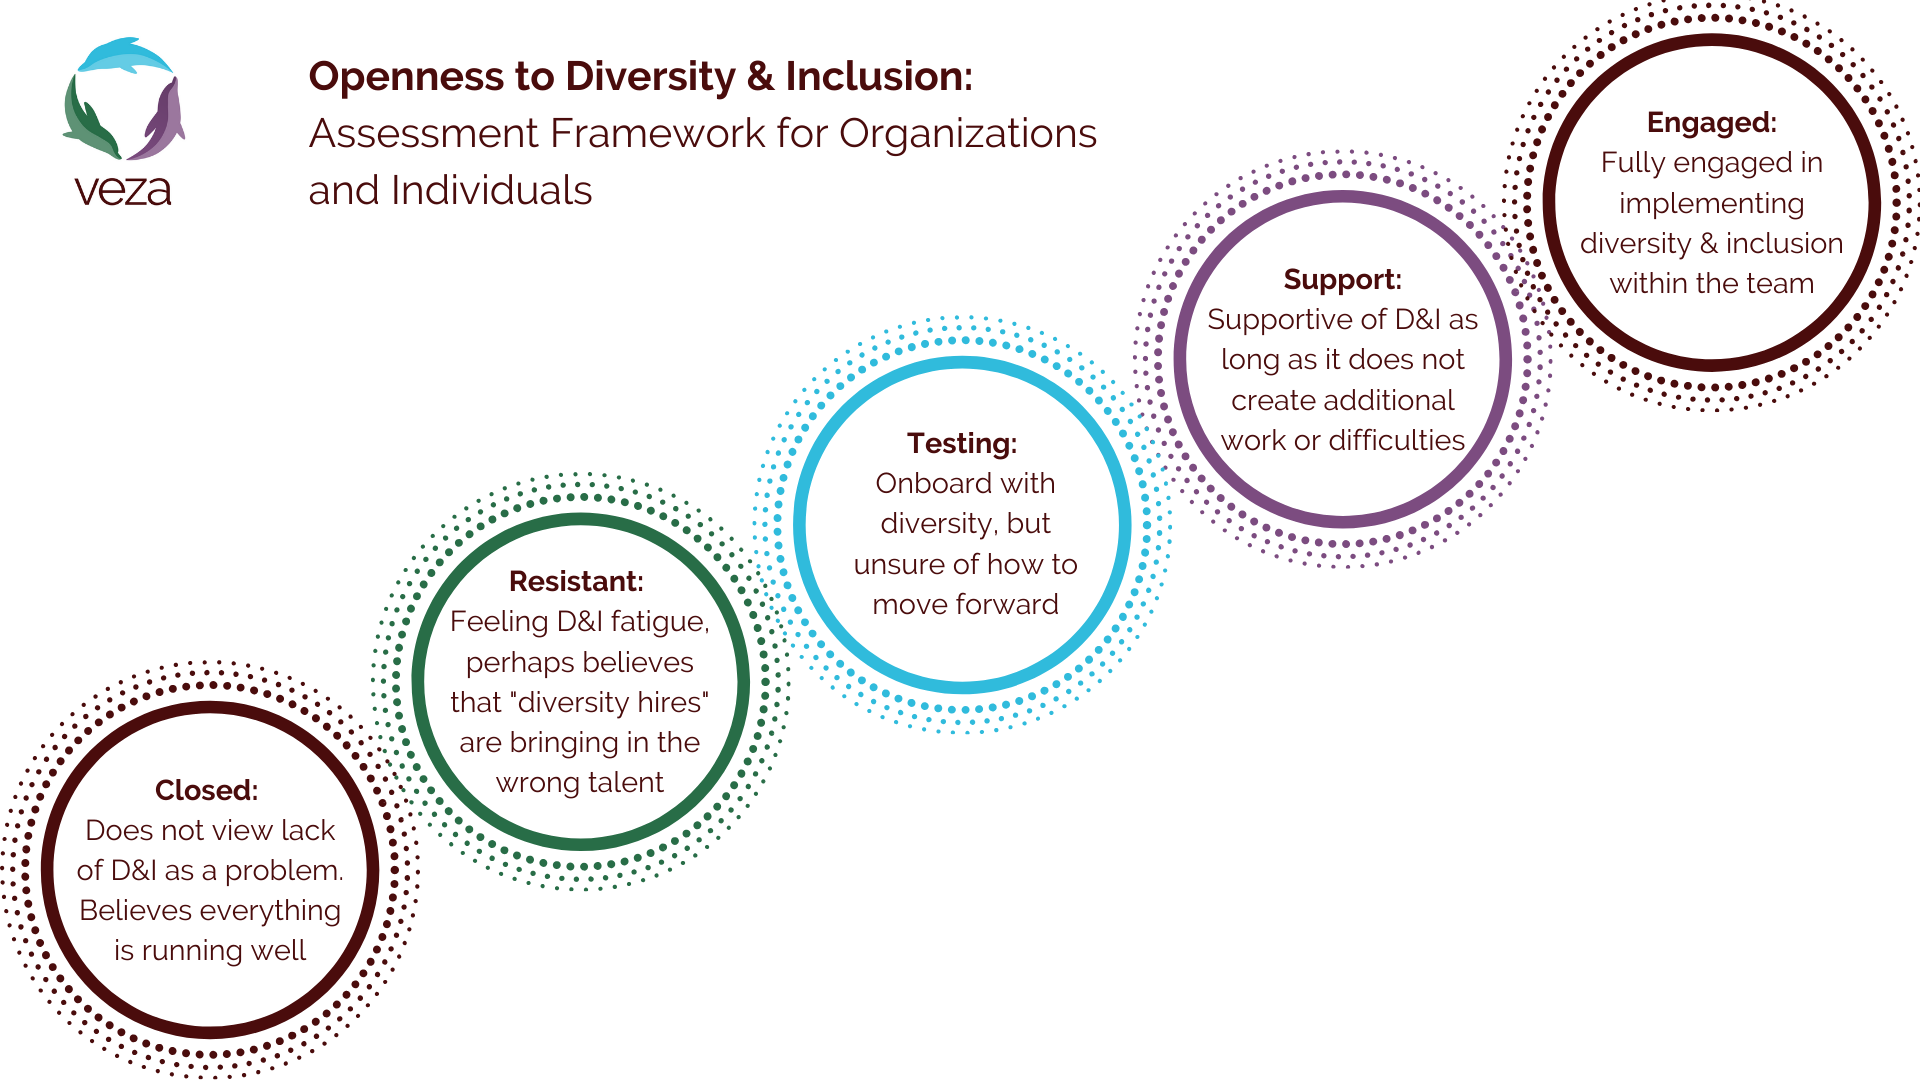 Openness to Equity, Diversity and Inclusion Model